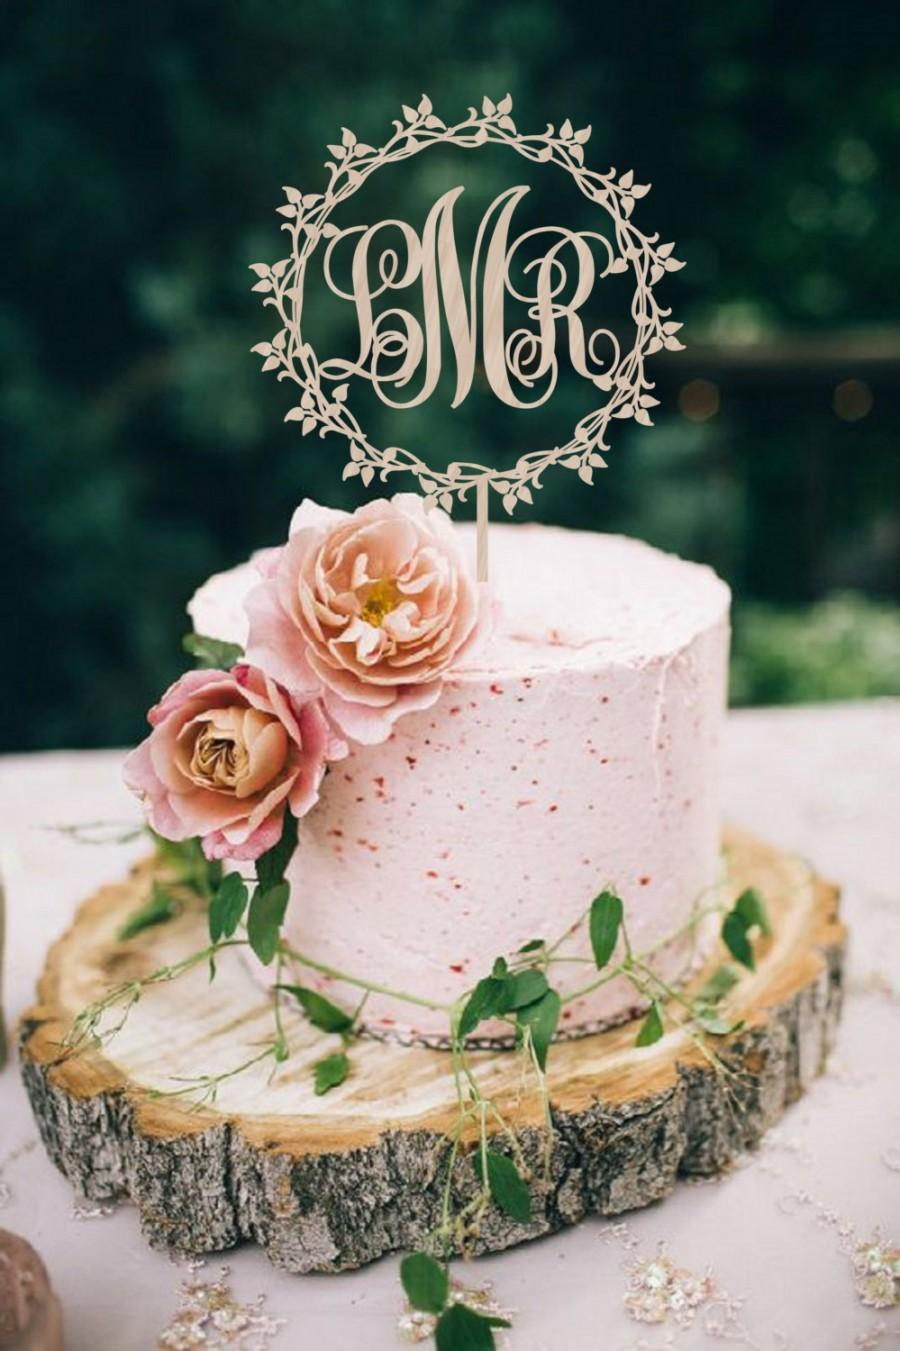 Hochzeit - Wedding Cake Topper Monogram  Wreath Wedding Cake Topper Initial    Personalized  Wedding Cake Topper  Wood Cake Topper